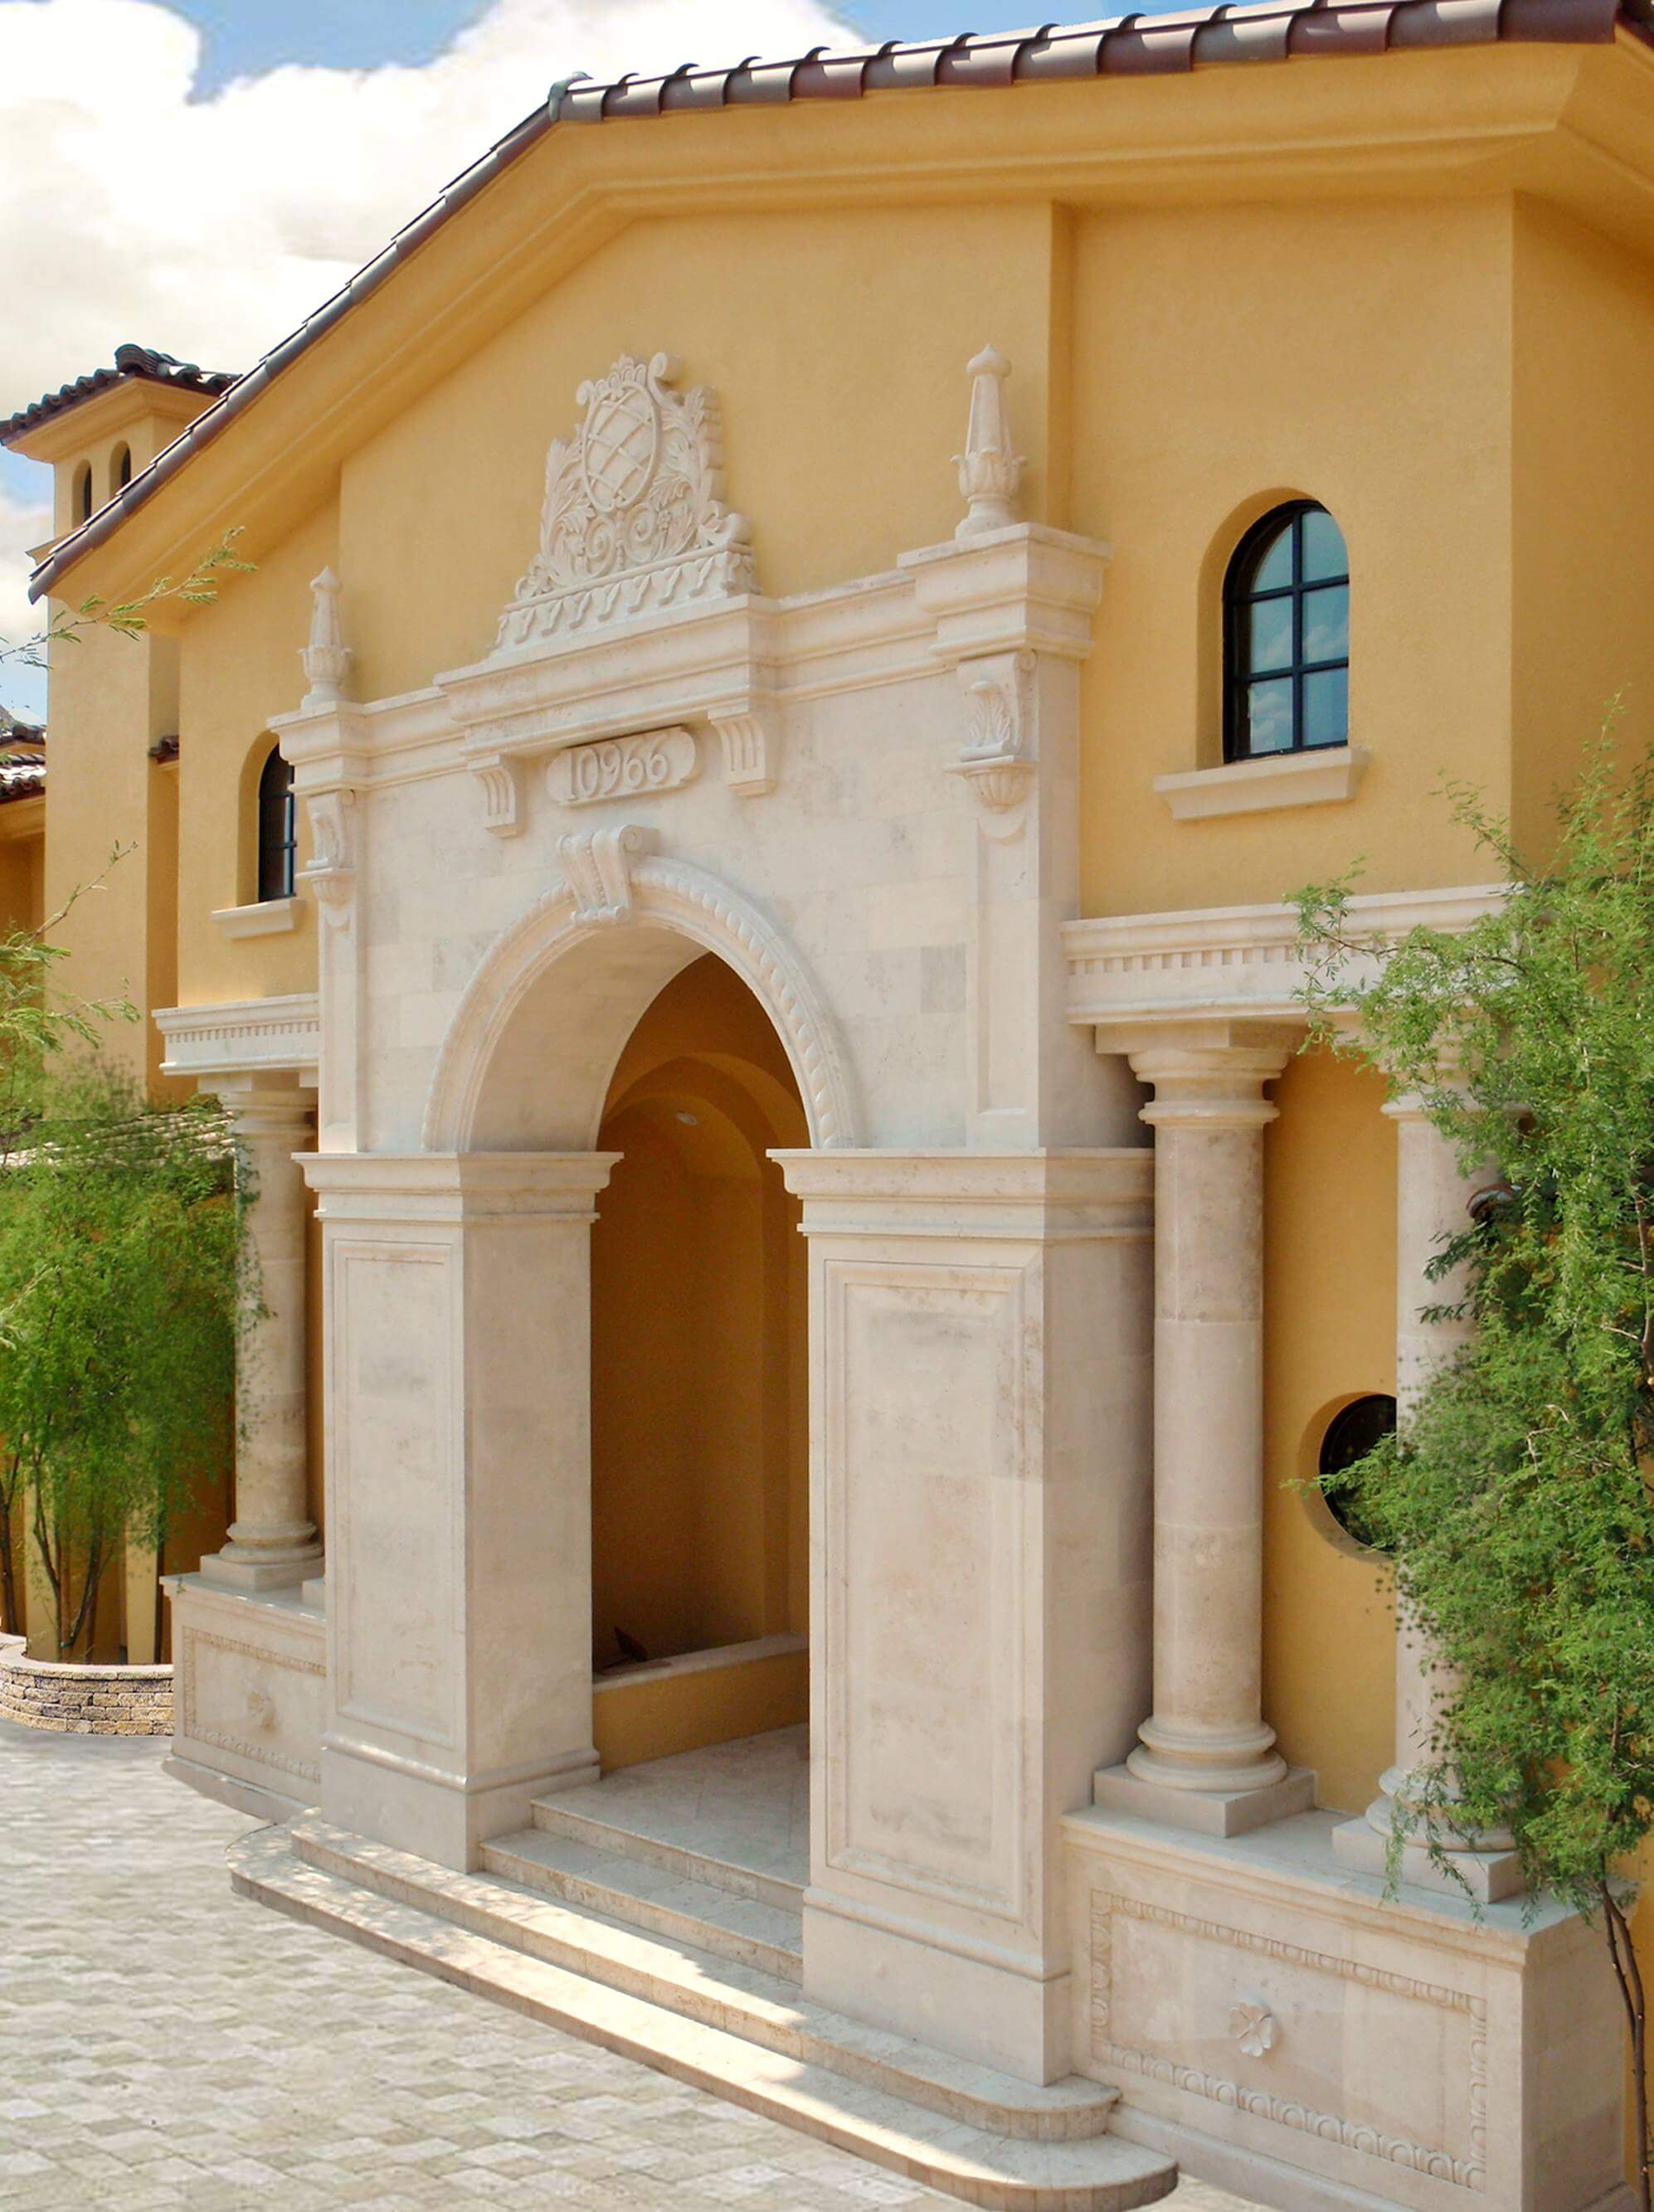 1-Classic-European-Arched-Entryway-Door-Surround-with-Doric-Columns-and-Crest-in-Riviera-Beige-Limes